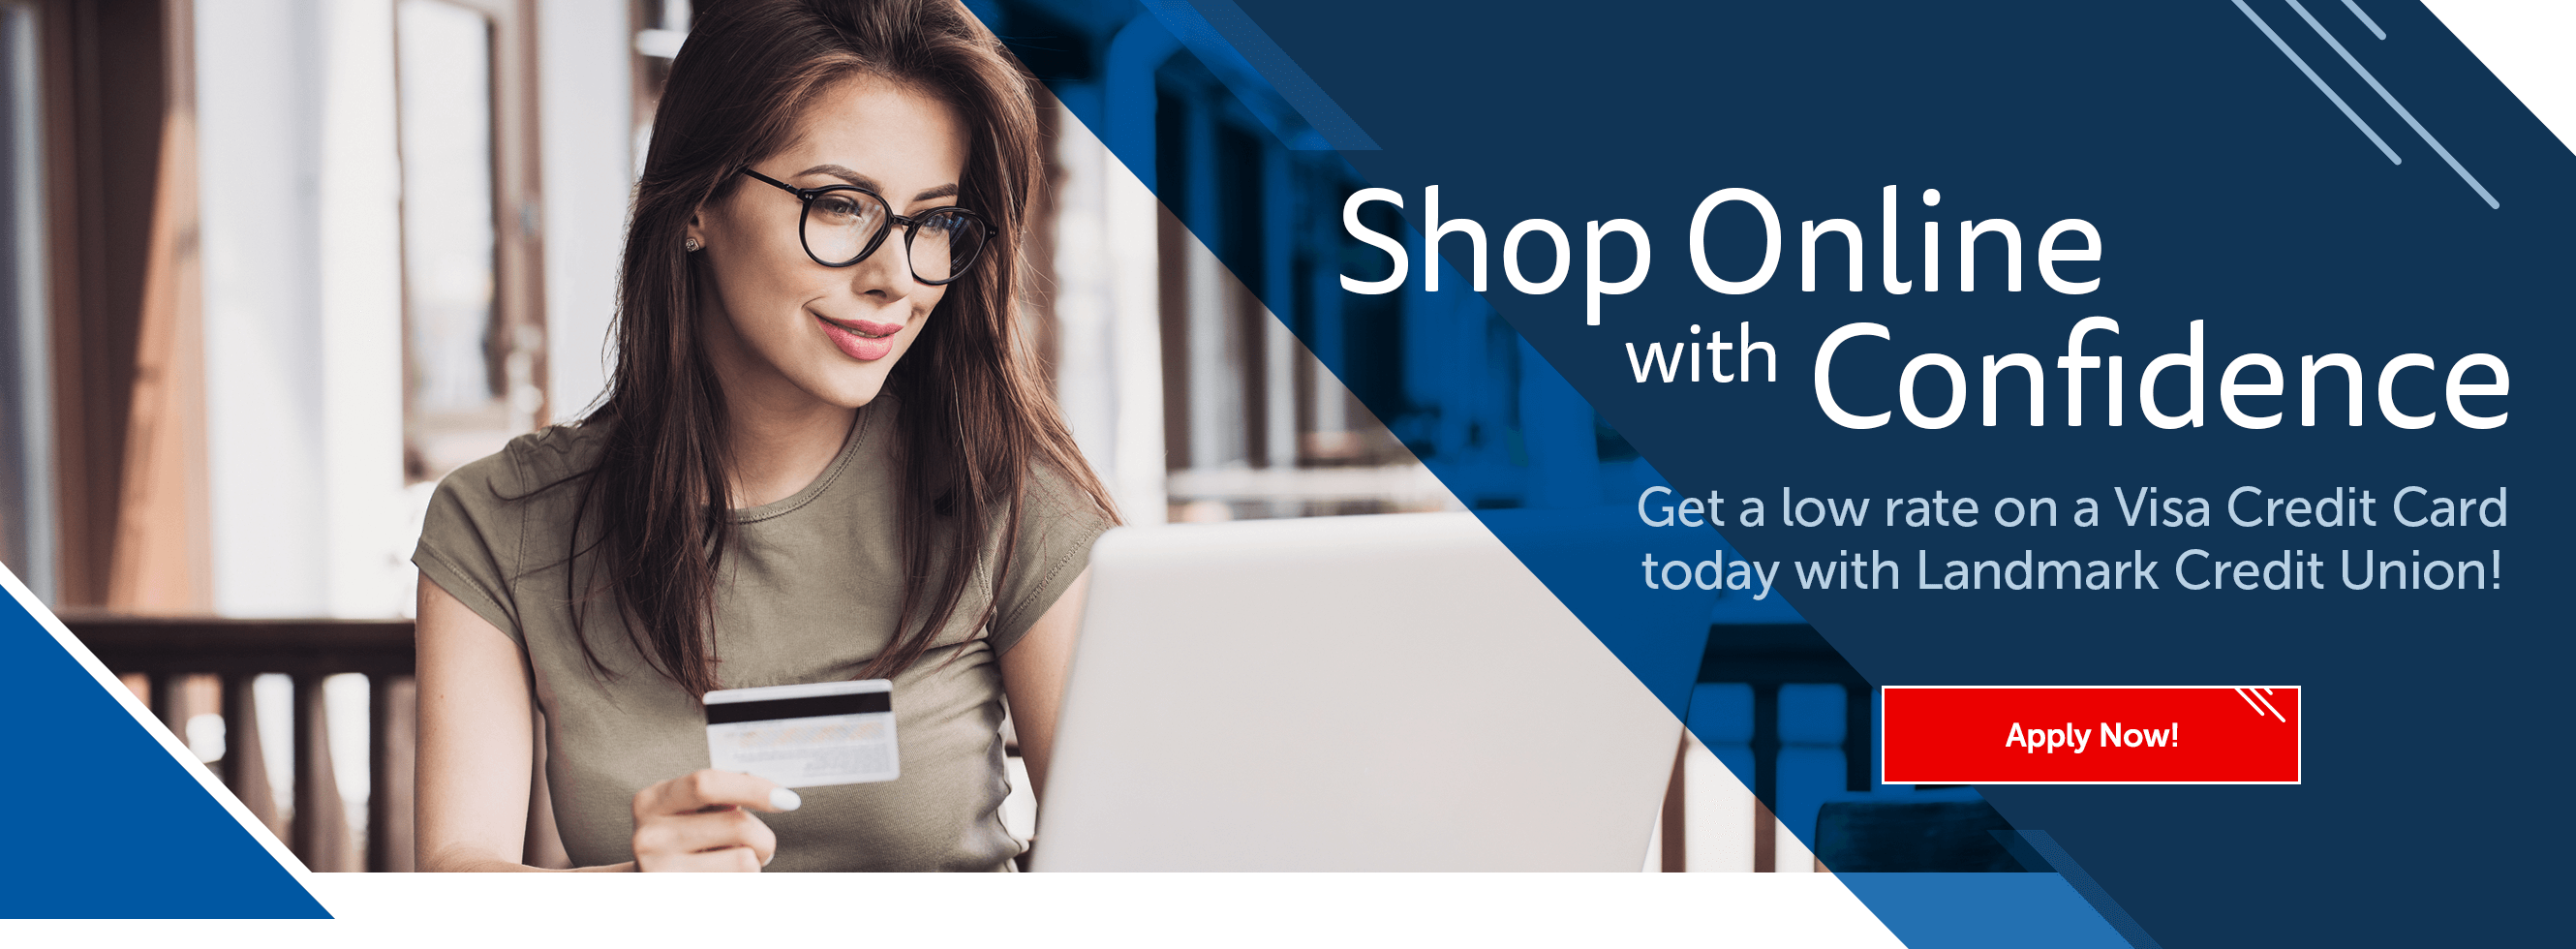 Shop Online with Confidence. Get a low rate on a Visa Credit Card today with Landmark Credit Union! Apply Now!